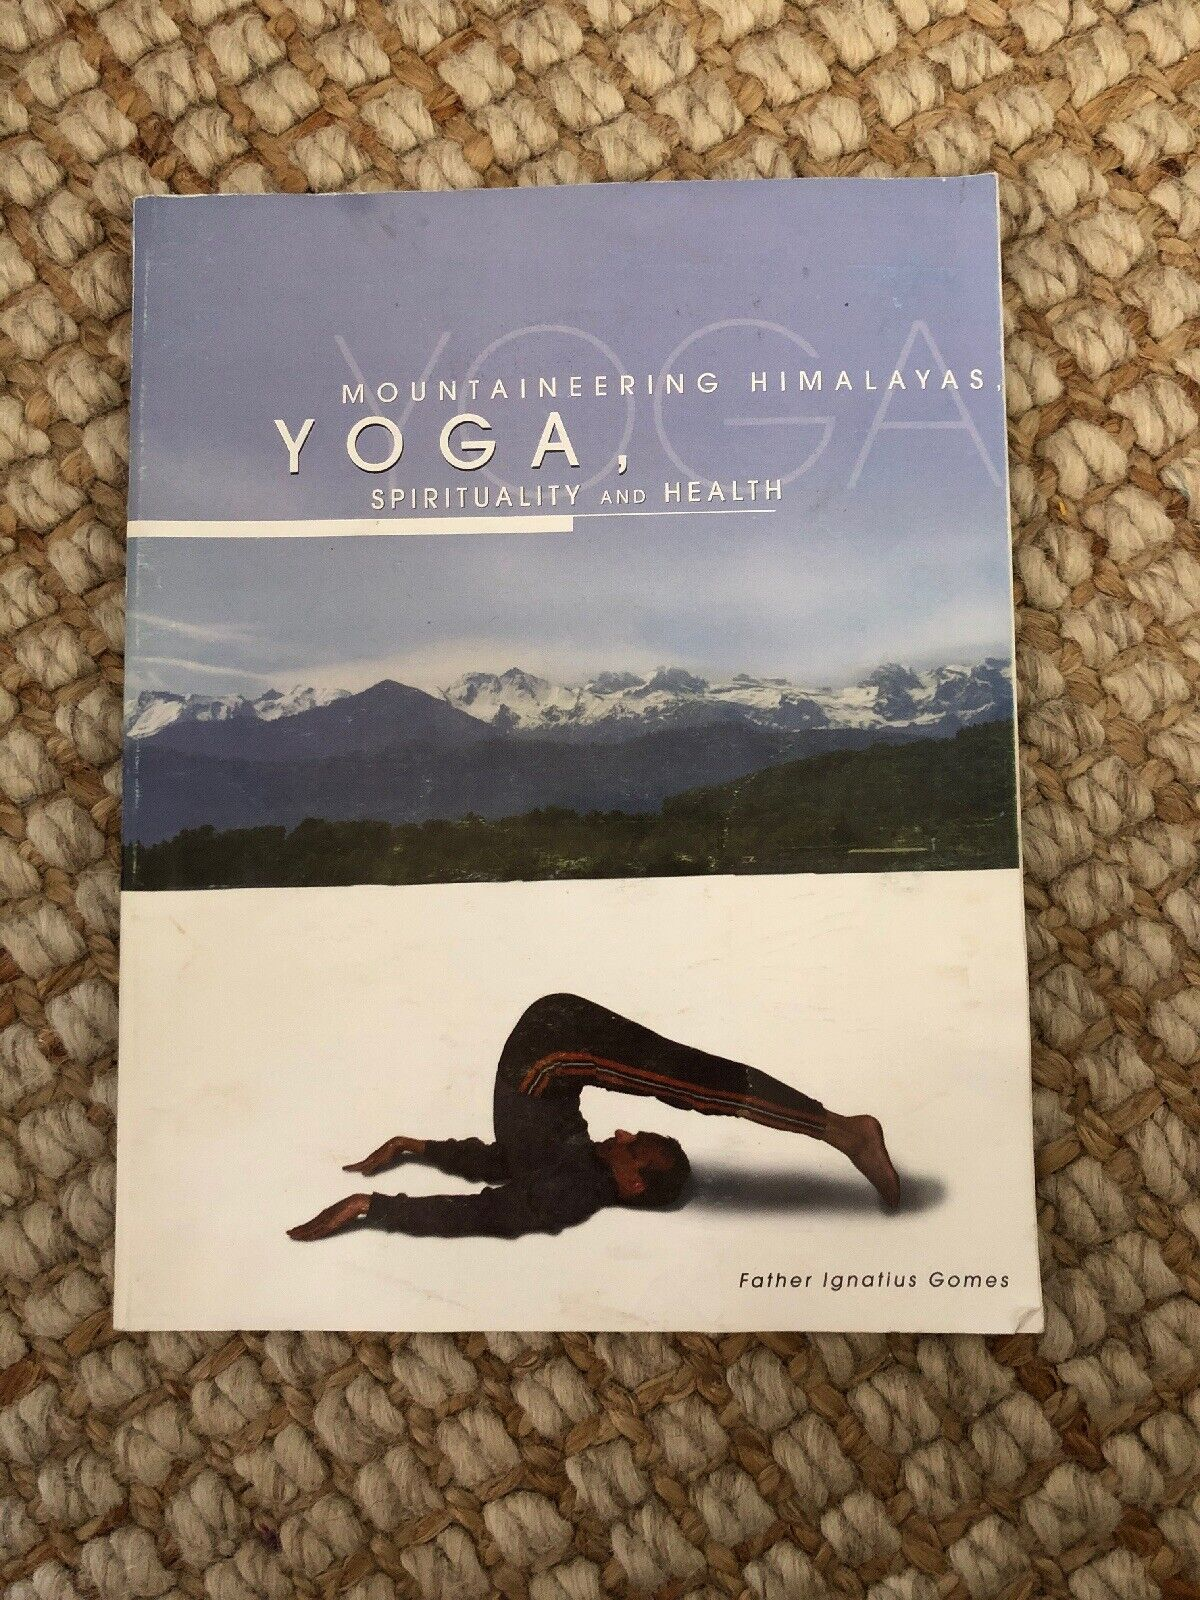 Mountaineering Himalayas, Yoga, Spirituality and HEalth by Father Ignatuis Gomes 2